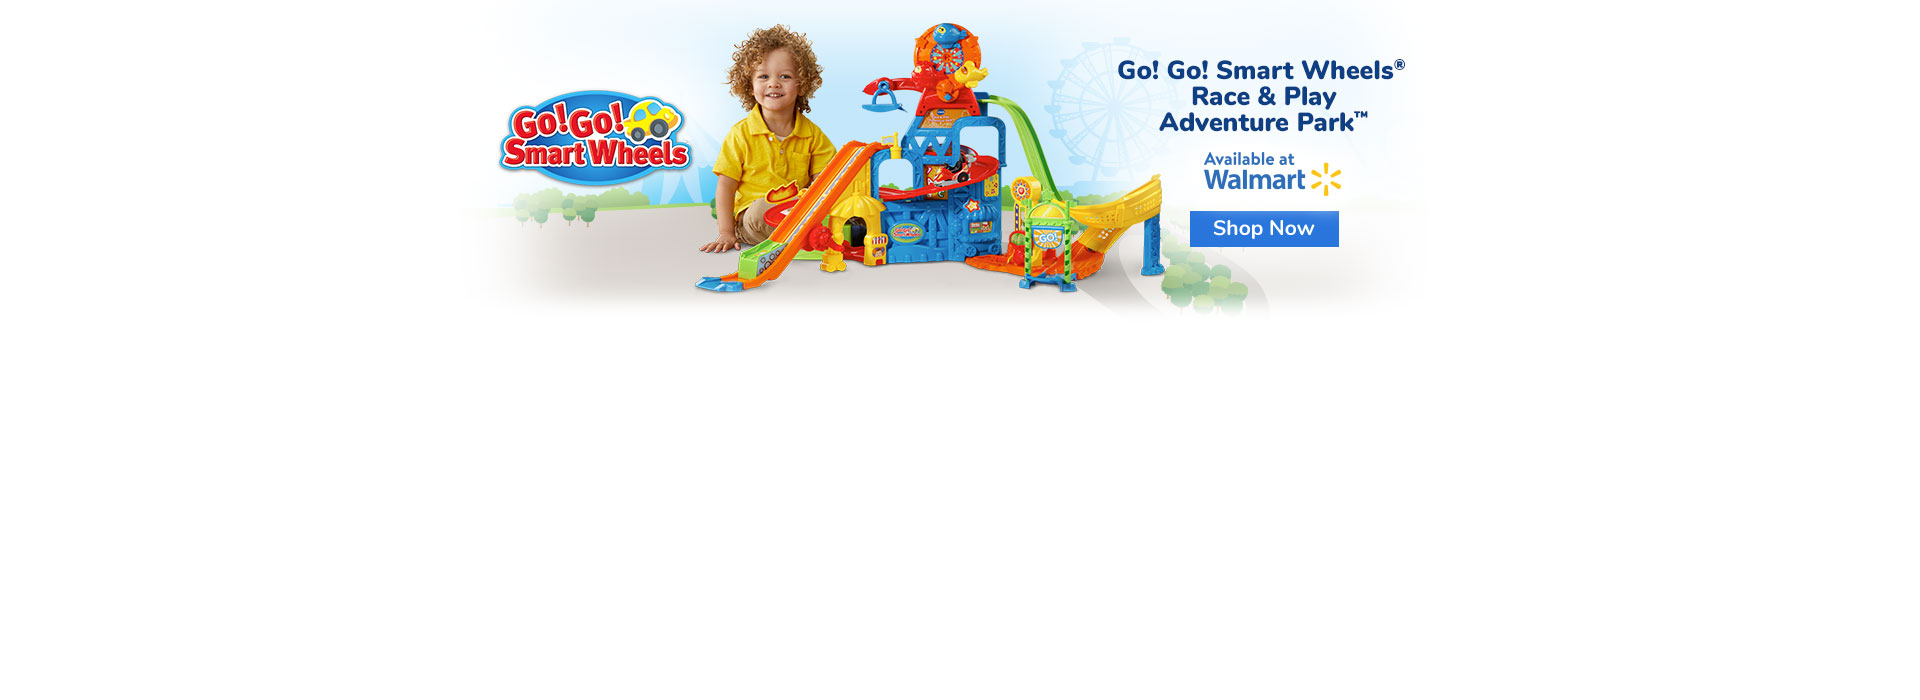 Go! Go! Smart Wheels Race and Play Adventure Park, Buy Now at Walmart